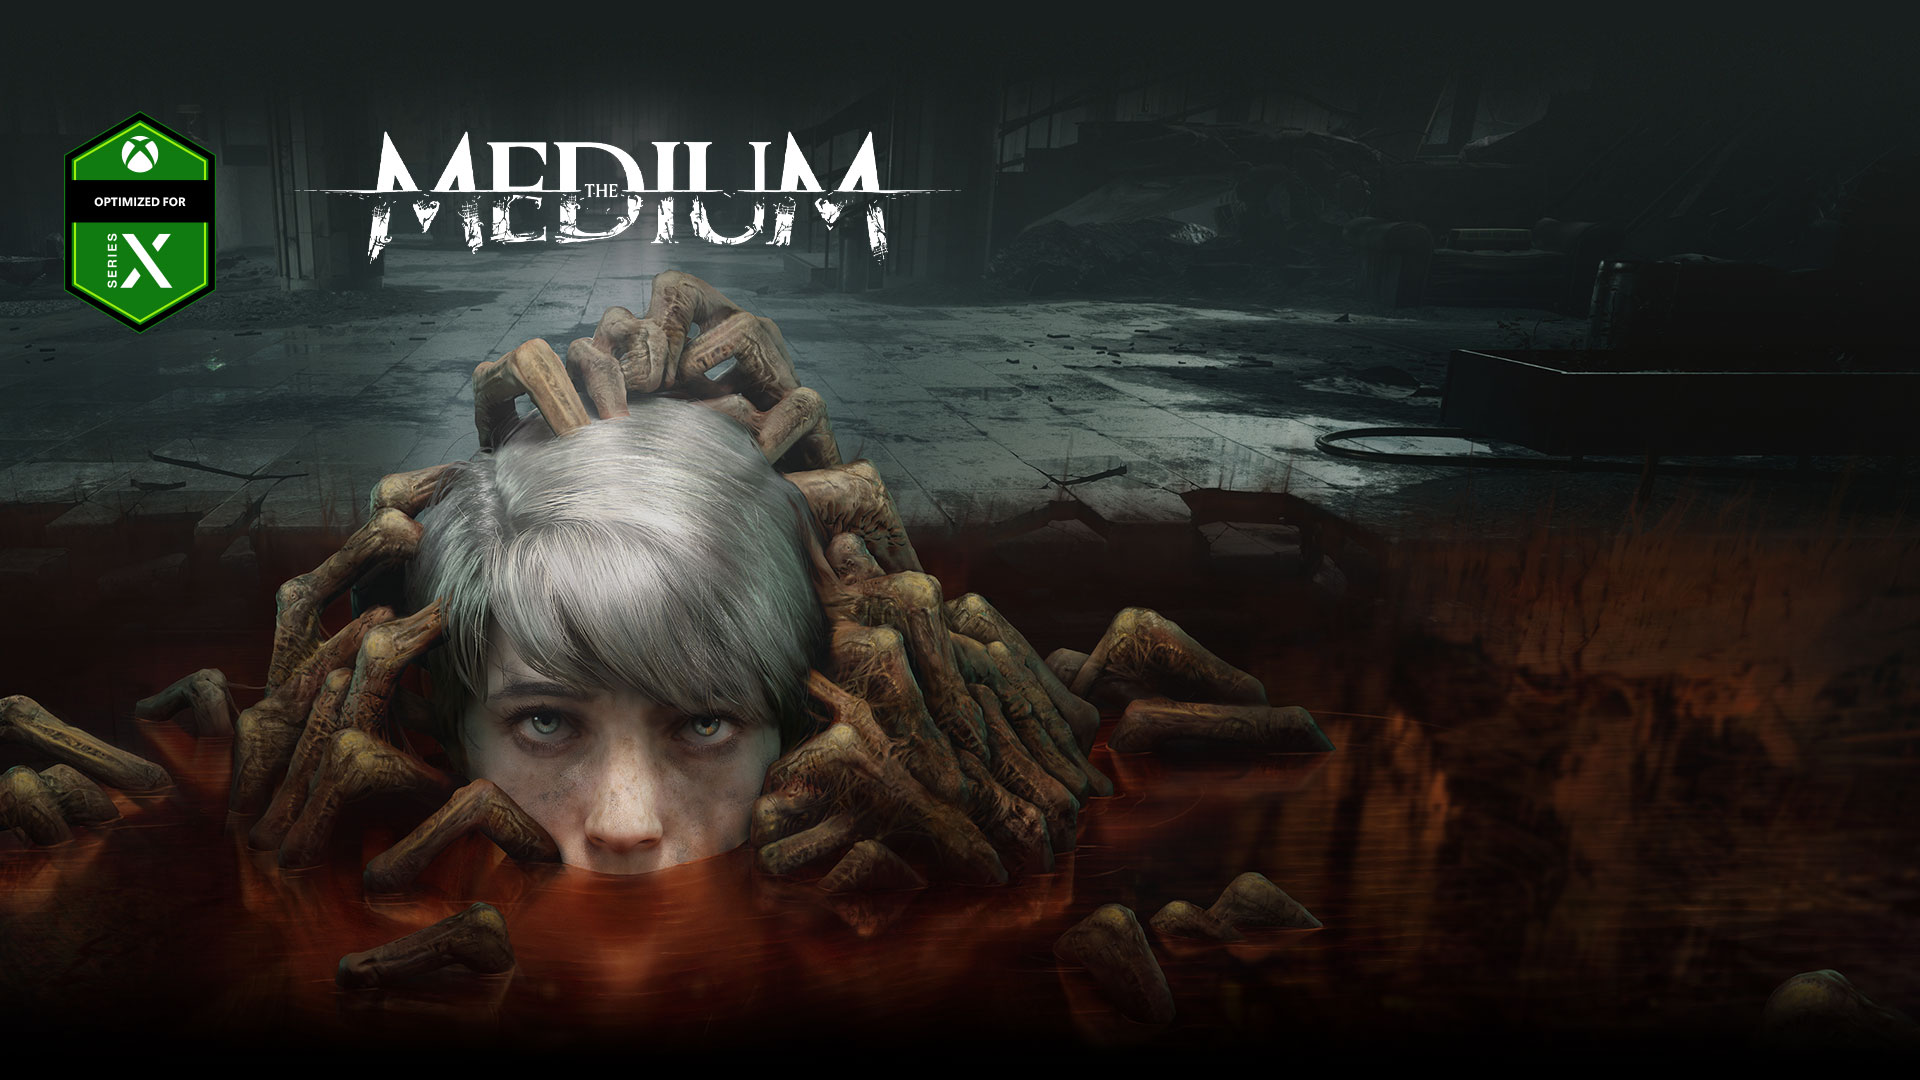 The Medium, Optimized for Series X, A child's head rises from a puddle filled with undead hands.